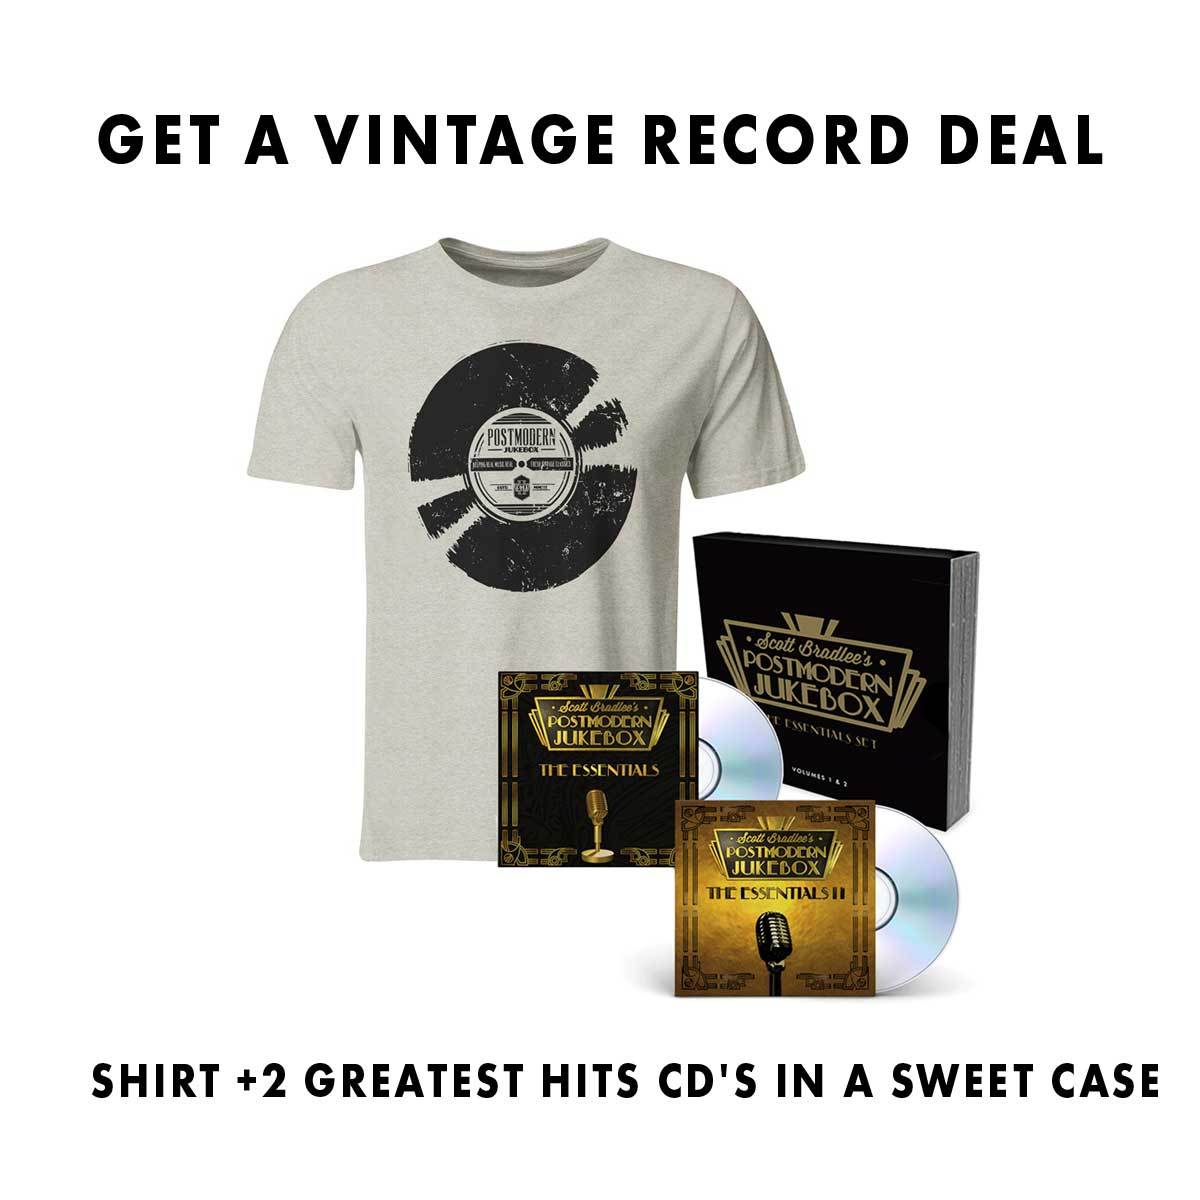 Vintage Record T-Shirt + Essentials CD Bundle